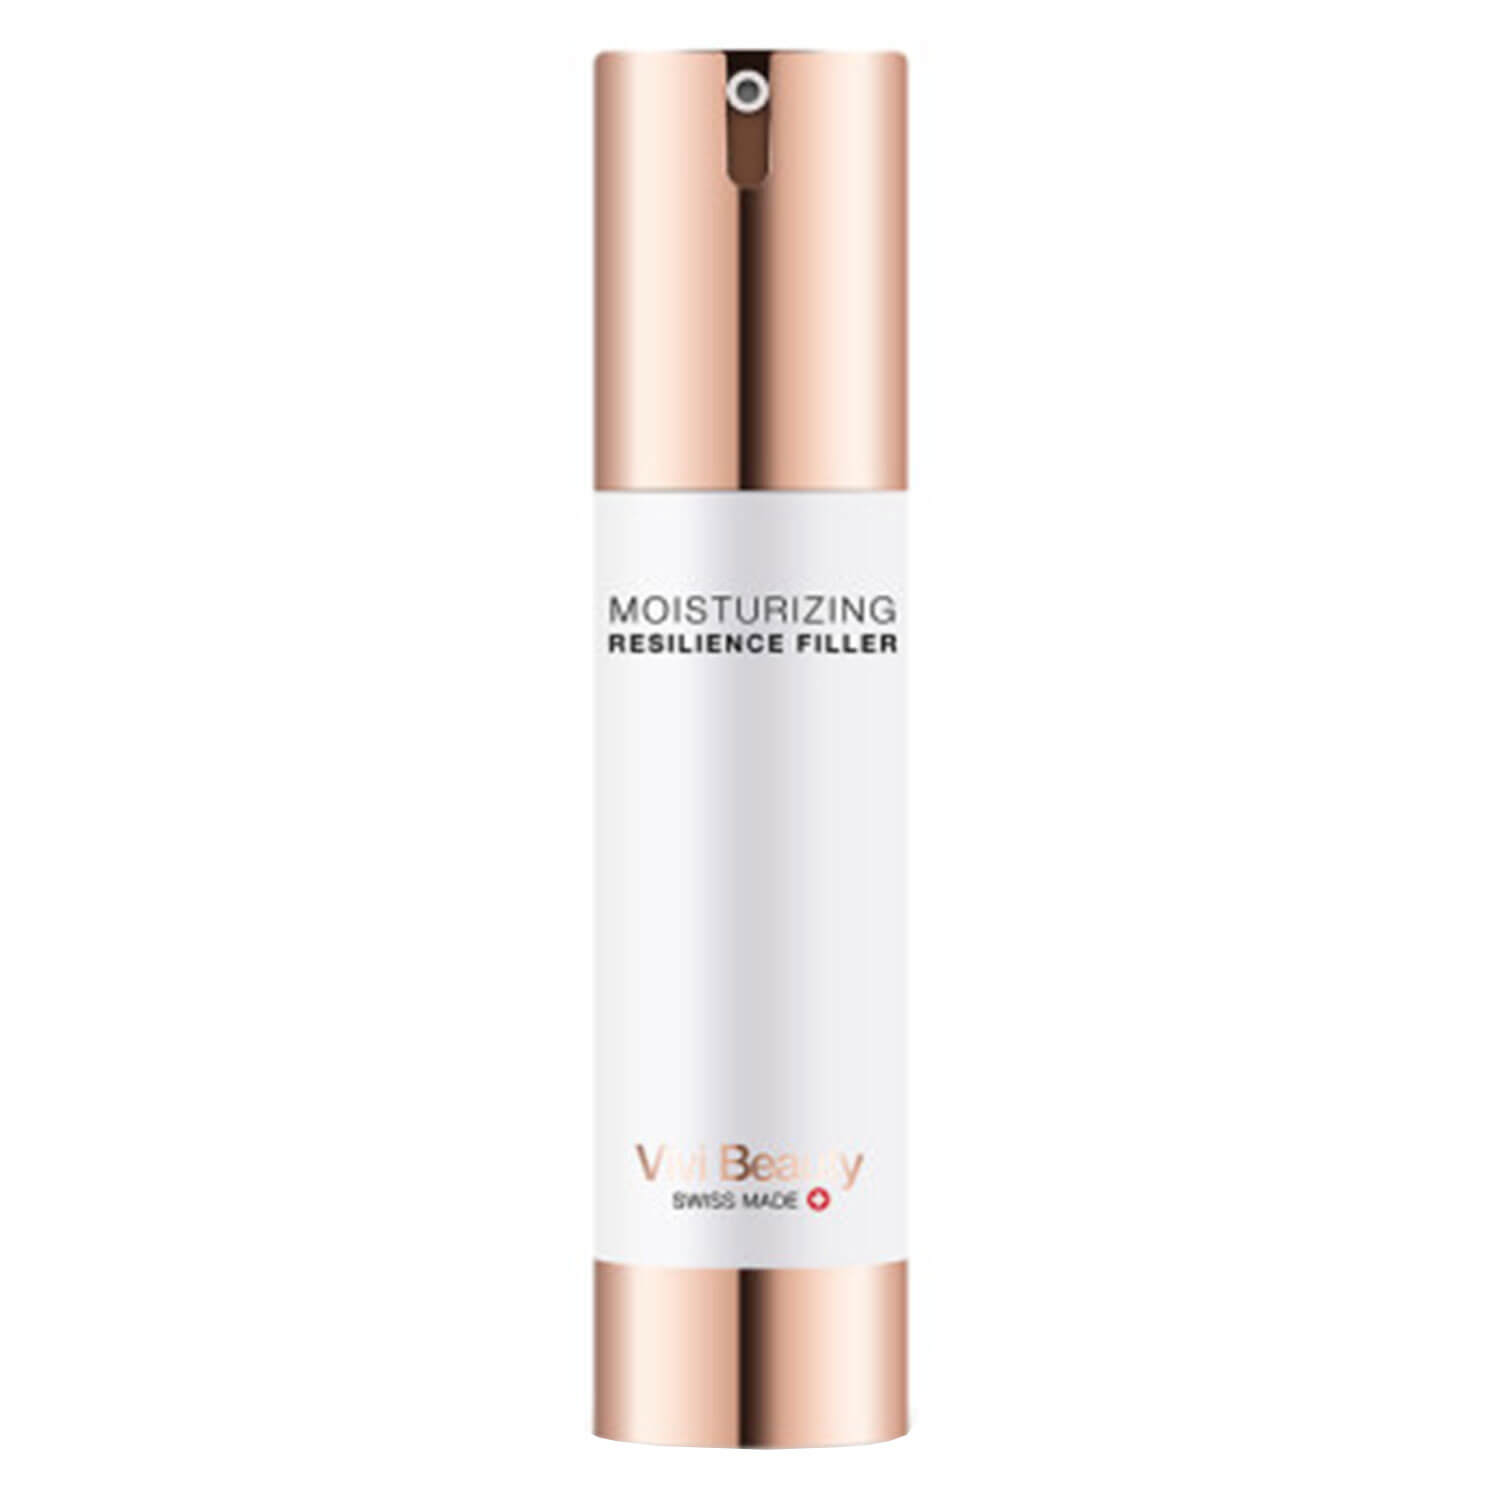 Vivi Beauty - Moisturizing Resilience Filler - 50ml